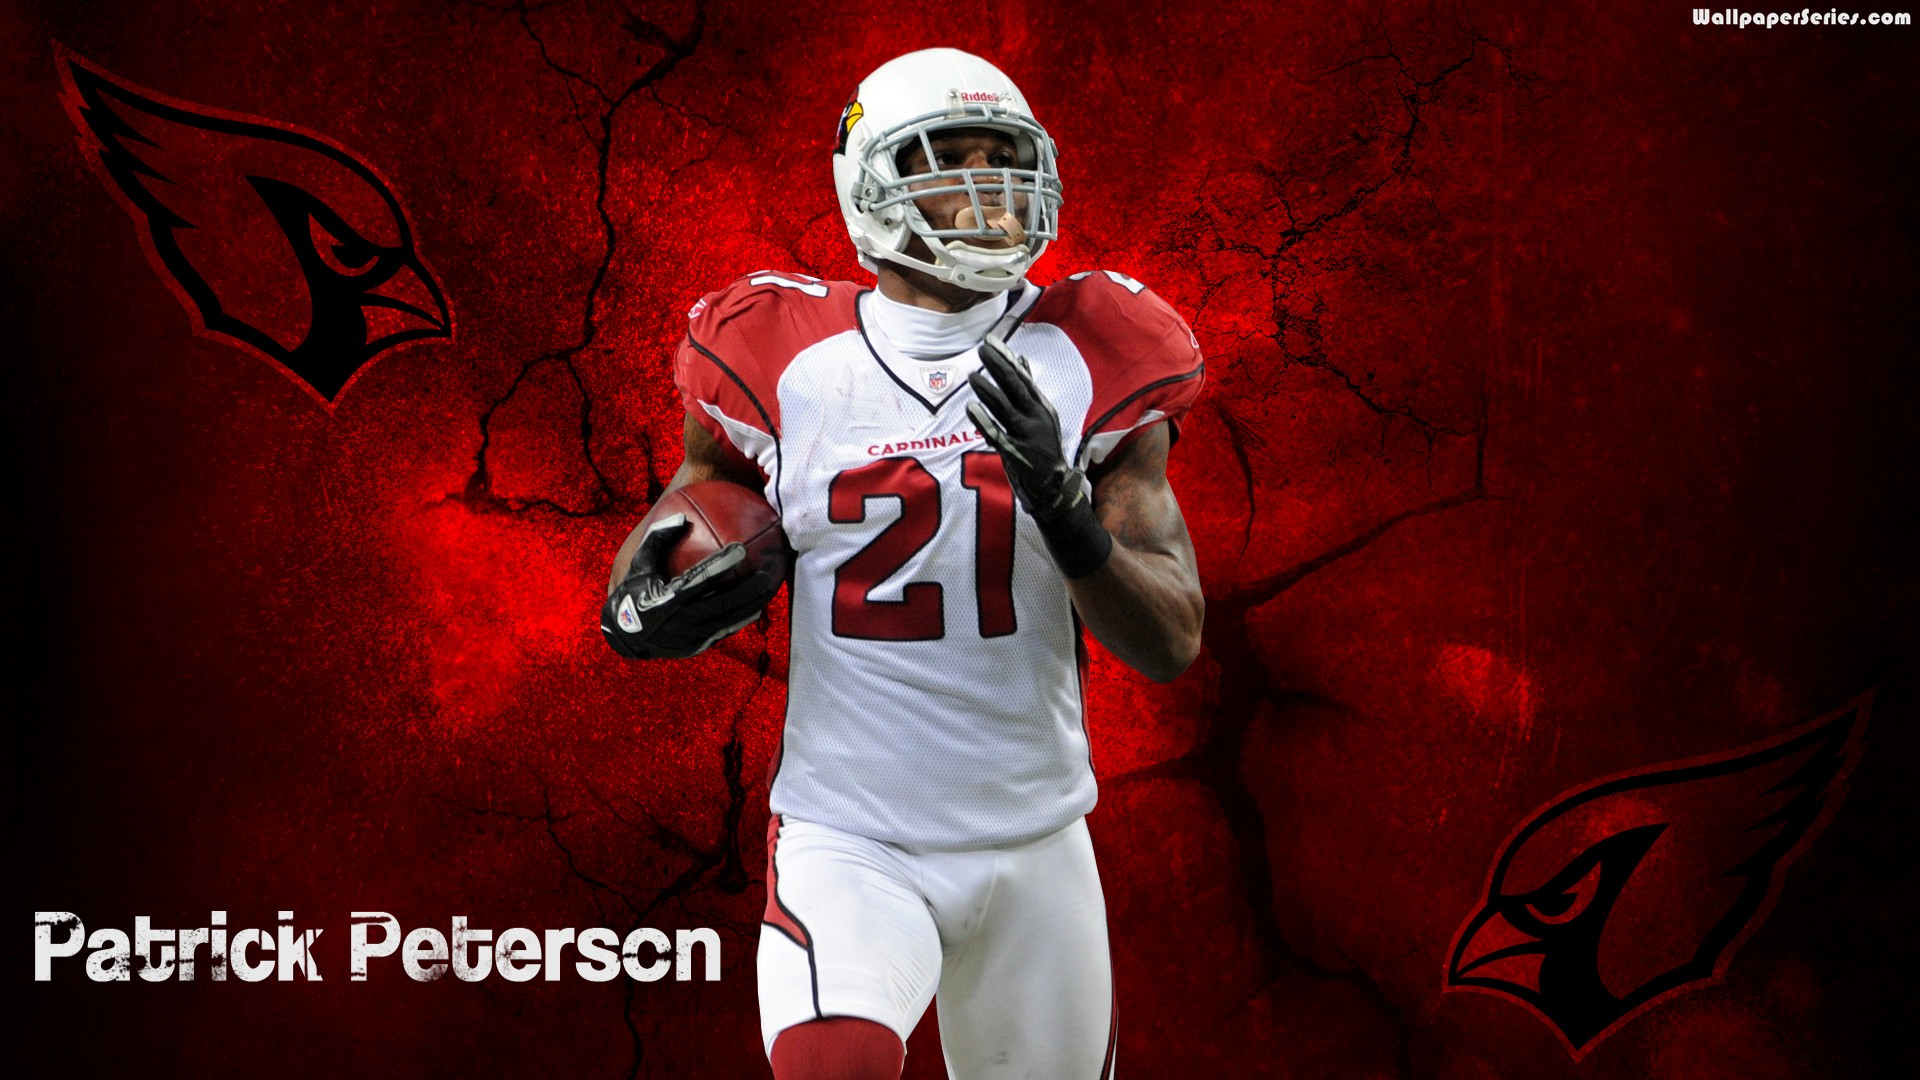 Cardinals Football Players   wallpaper 1920x1080